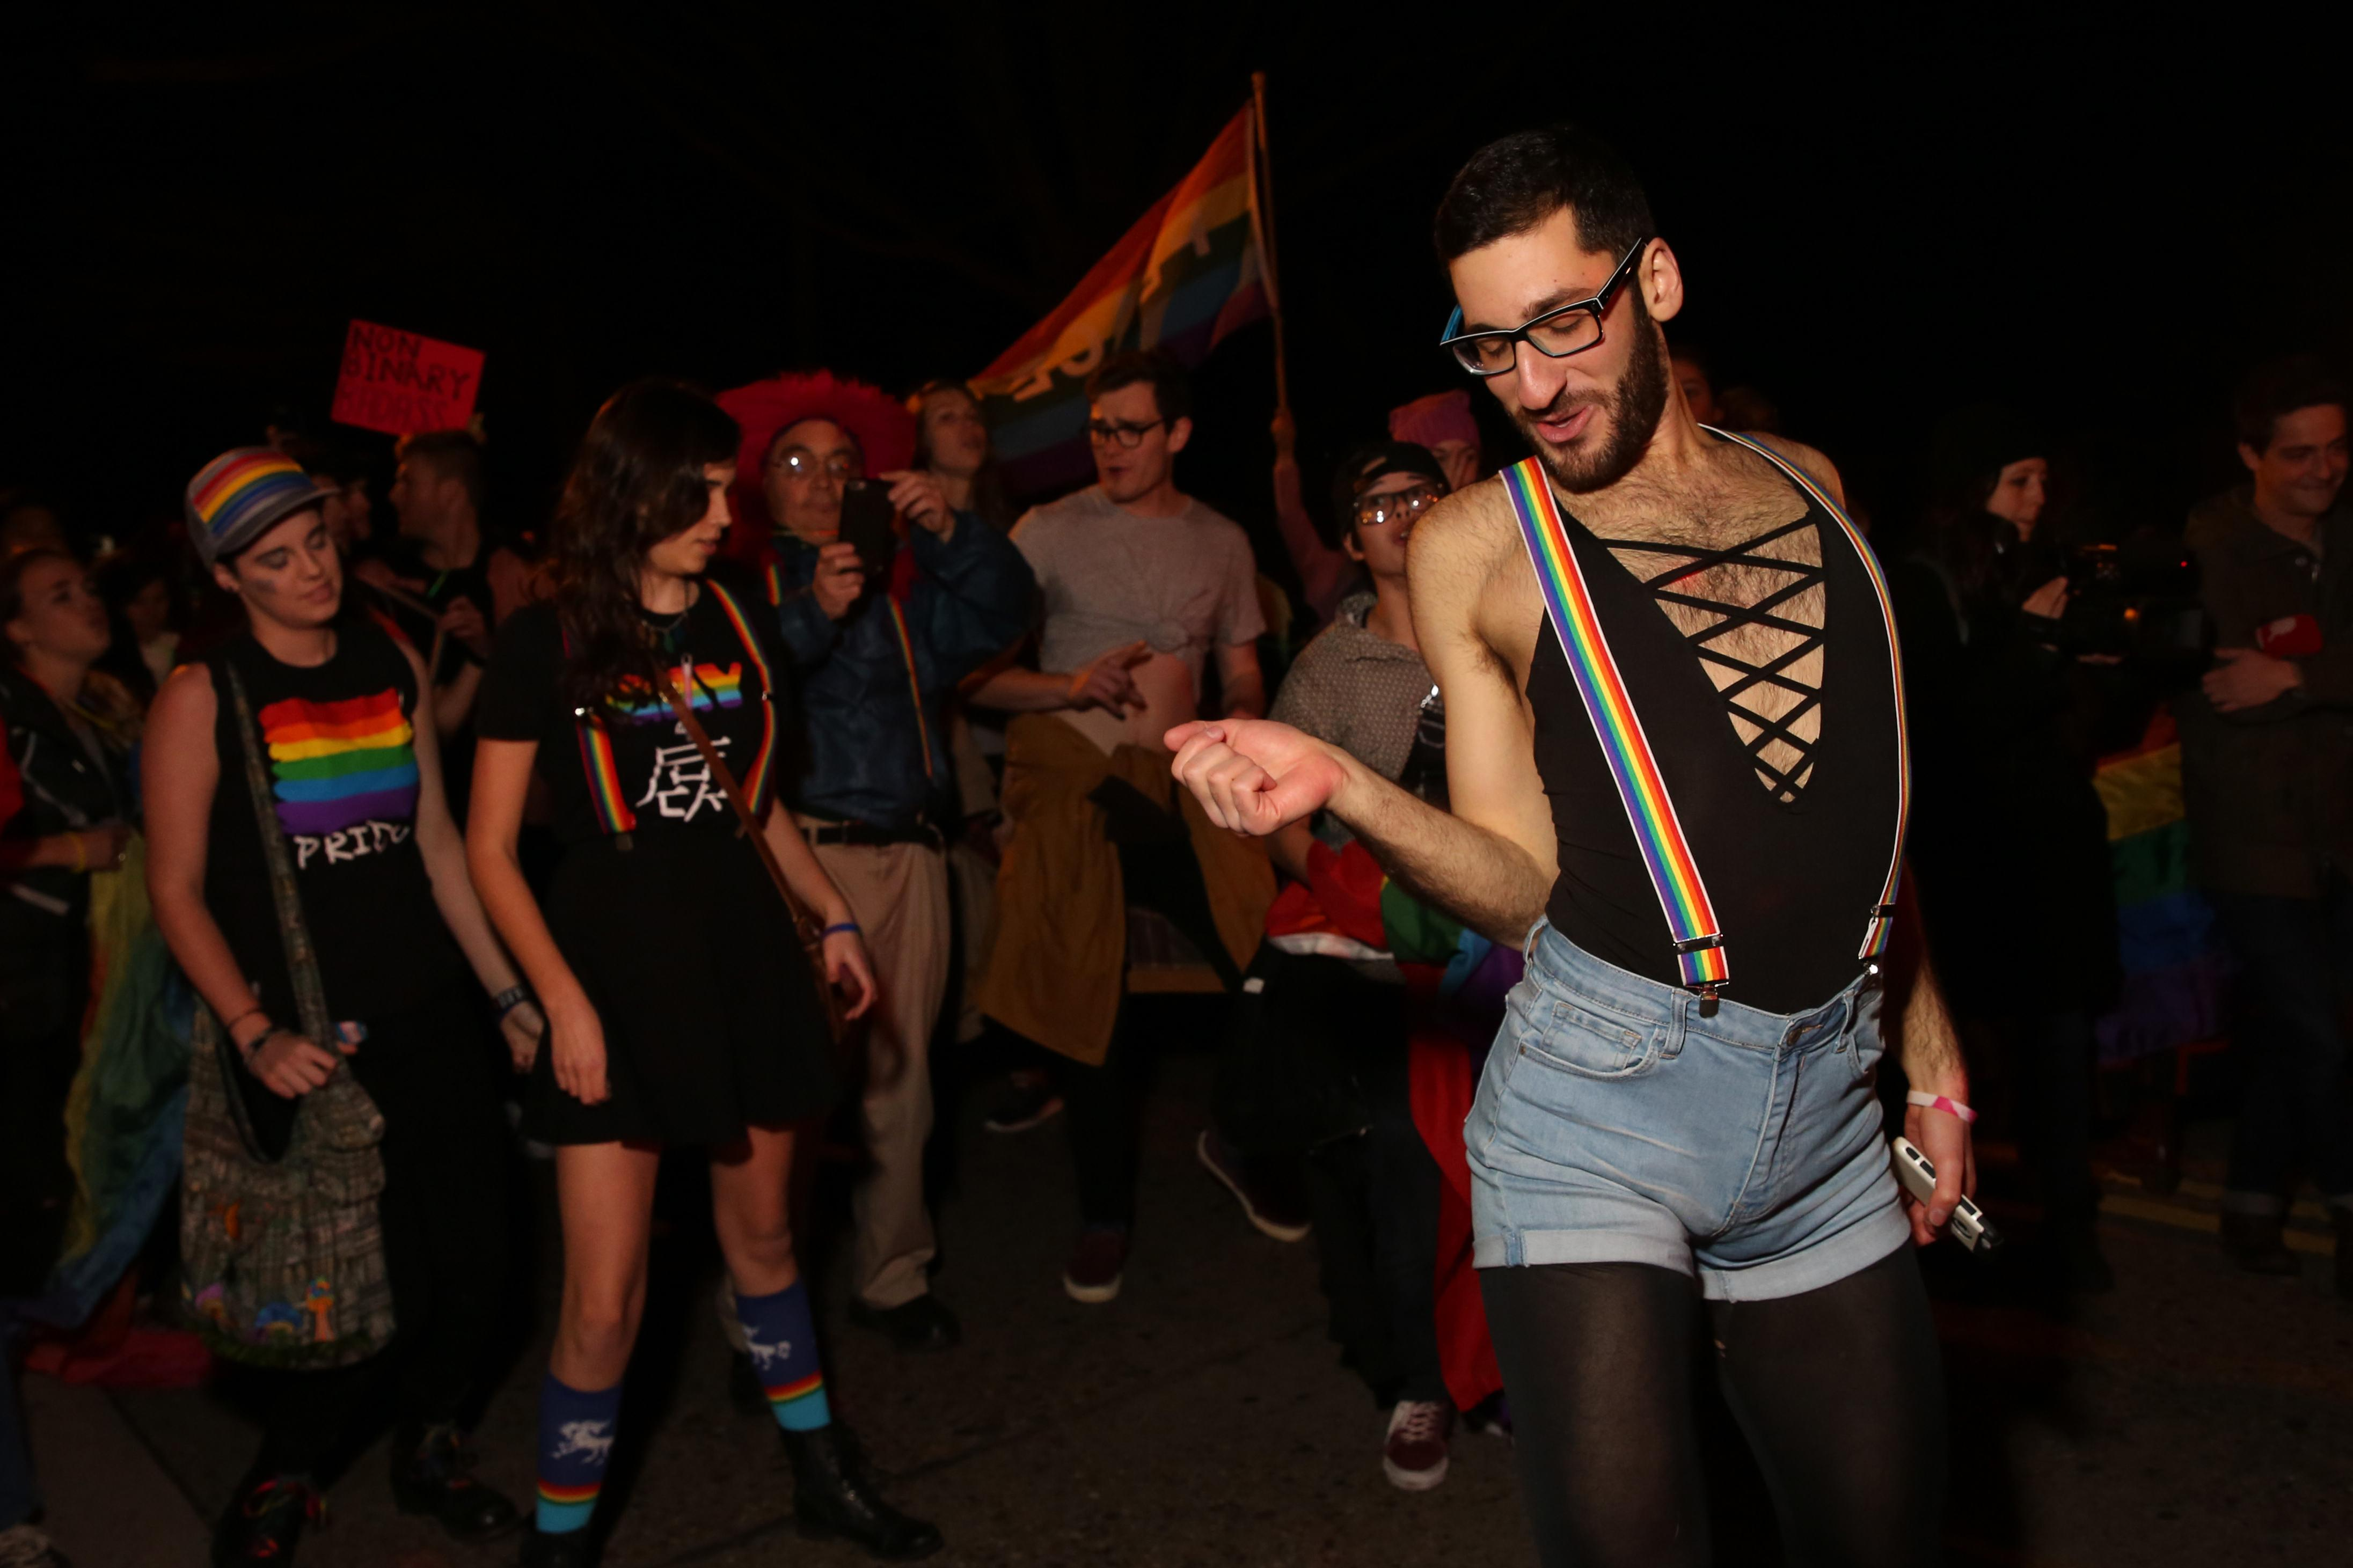 Queer dance party at Mike Pence's house, January 2016. (Amanda Andrade-Rhoades/DC Refined)